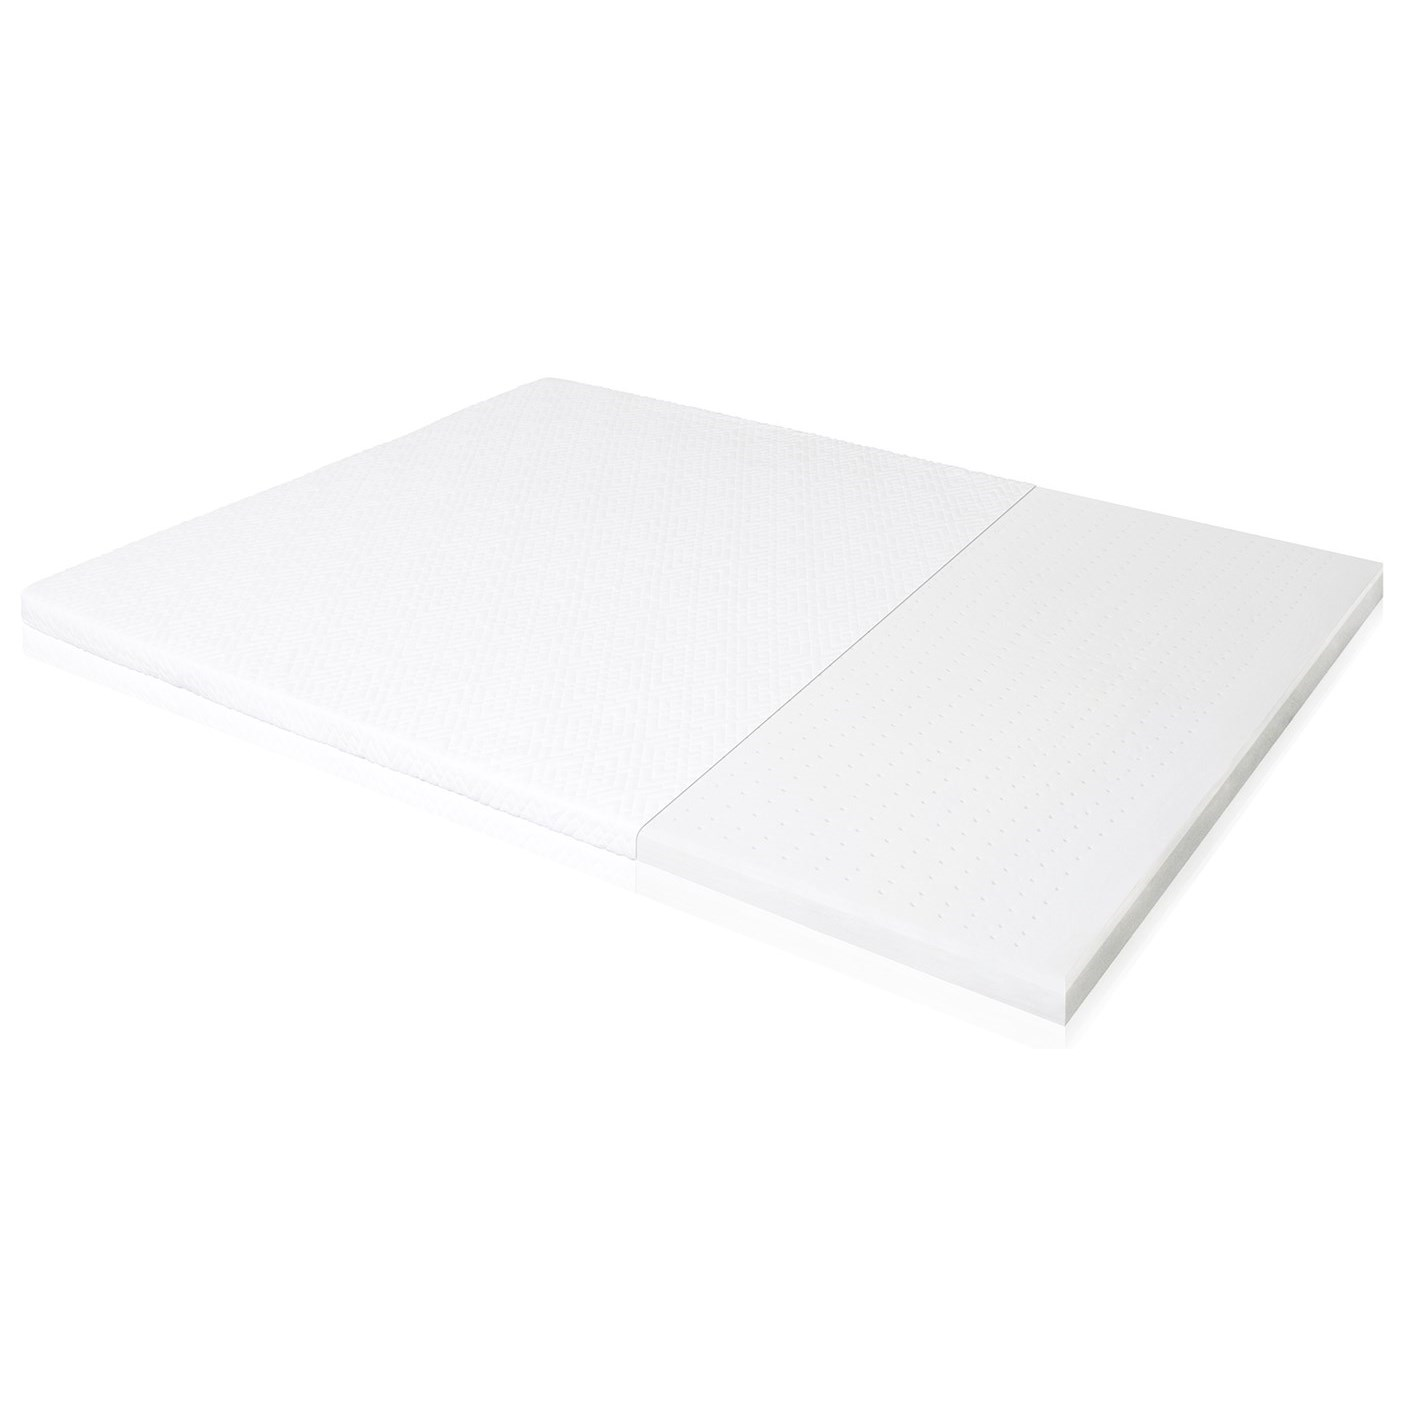 "Malouf Latex Foam Twin XL 2"" Latex Foam Mattress Topper - Item Number: IS20TX65LT"